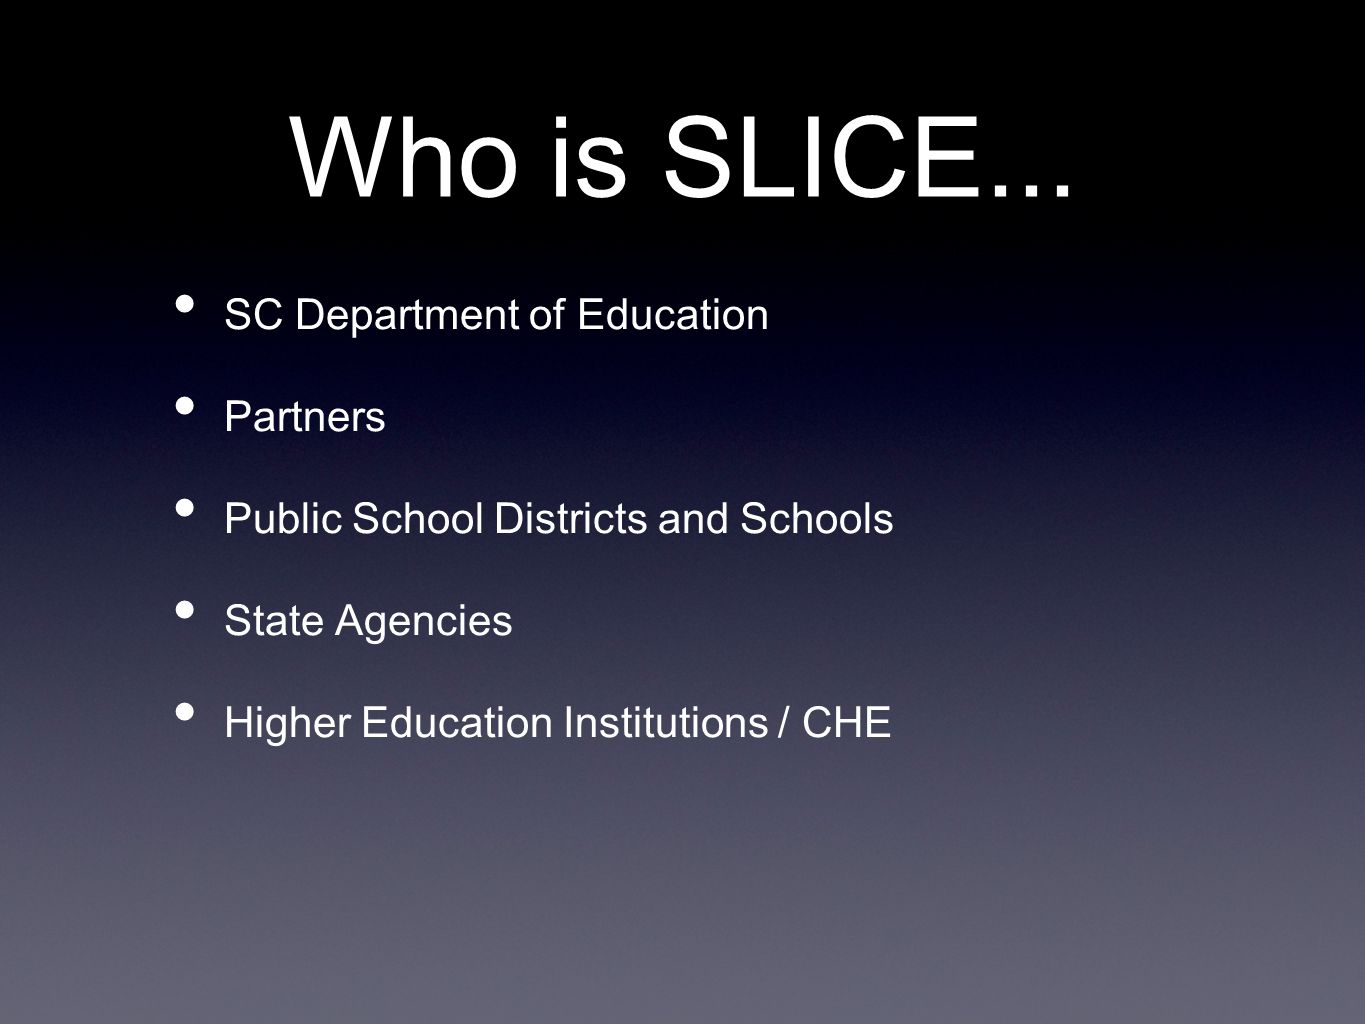 Who is SLICE...